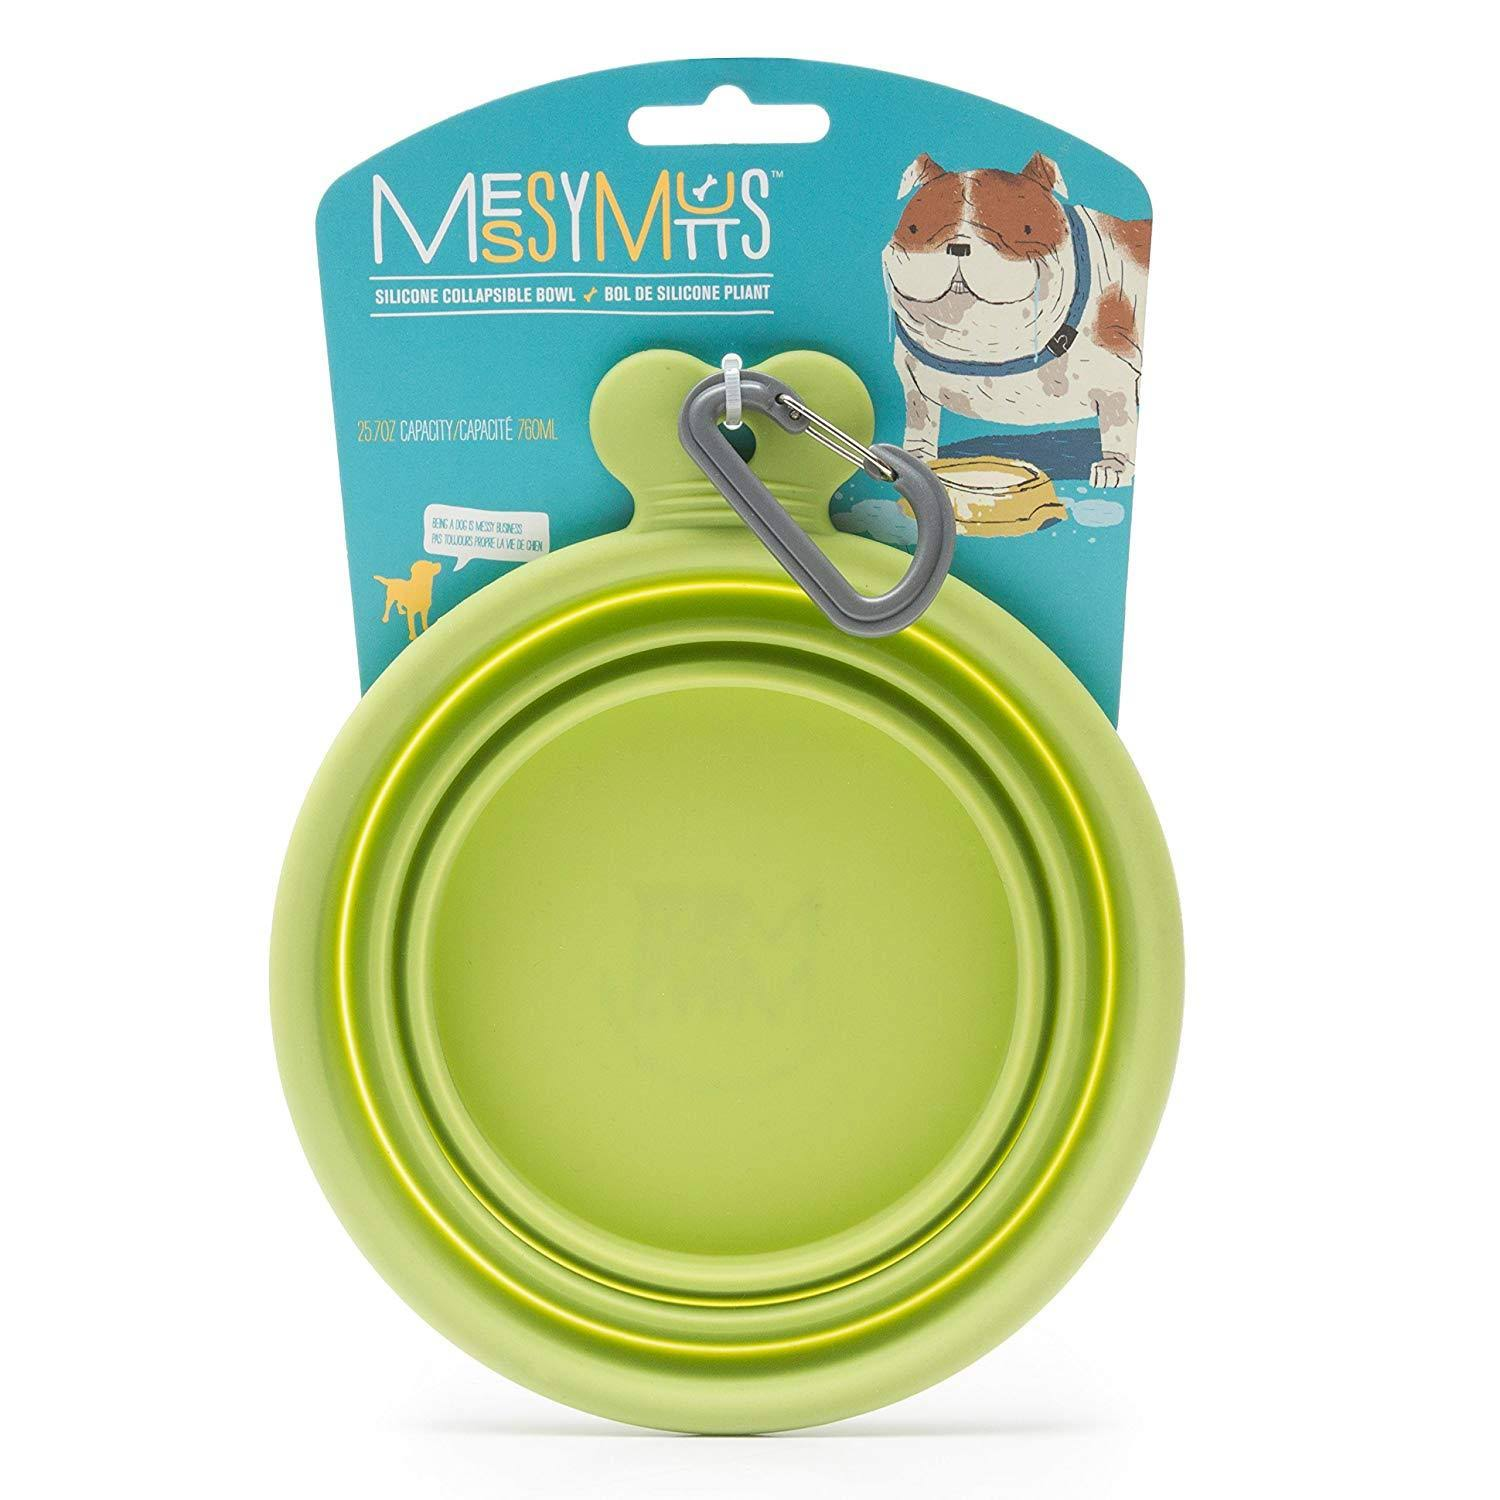 Messy Mutts Silicone Collapsible Dog Bowl - 25.7oz